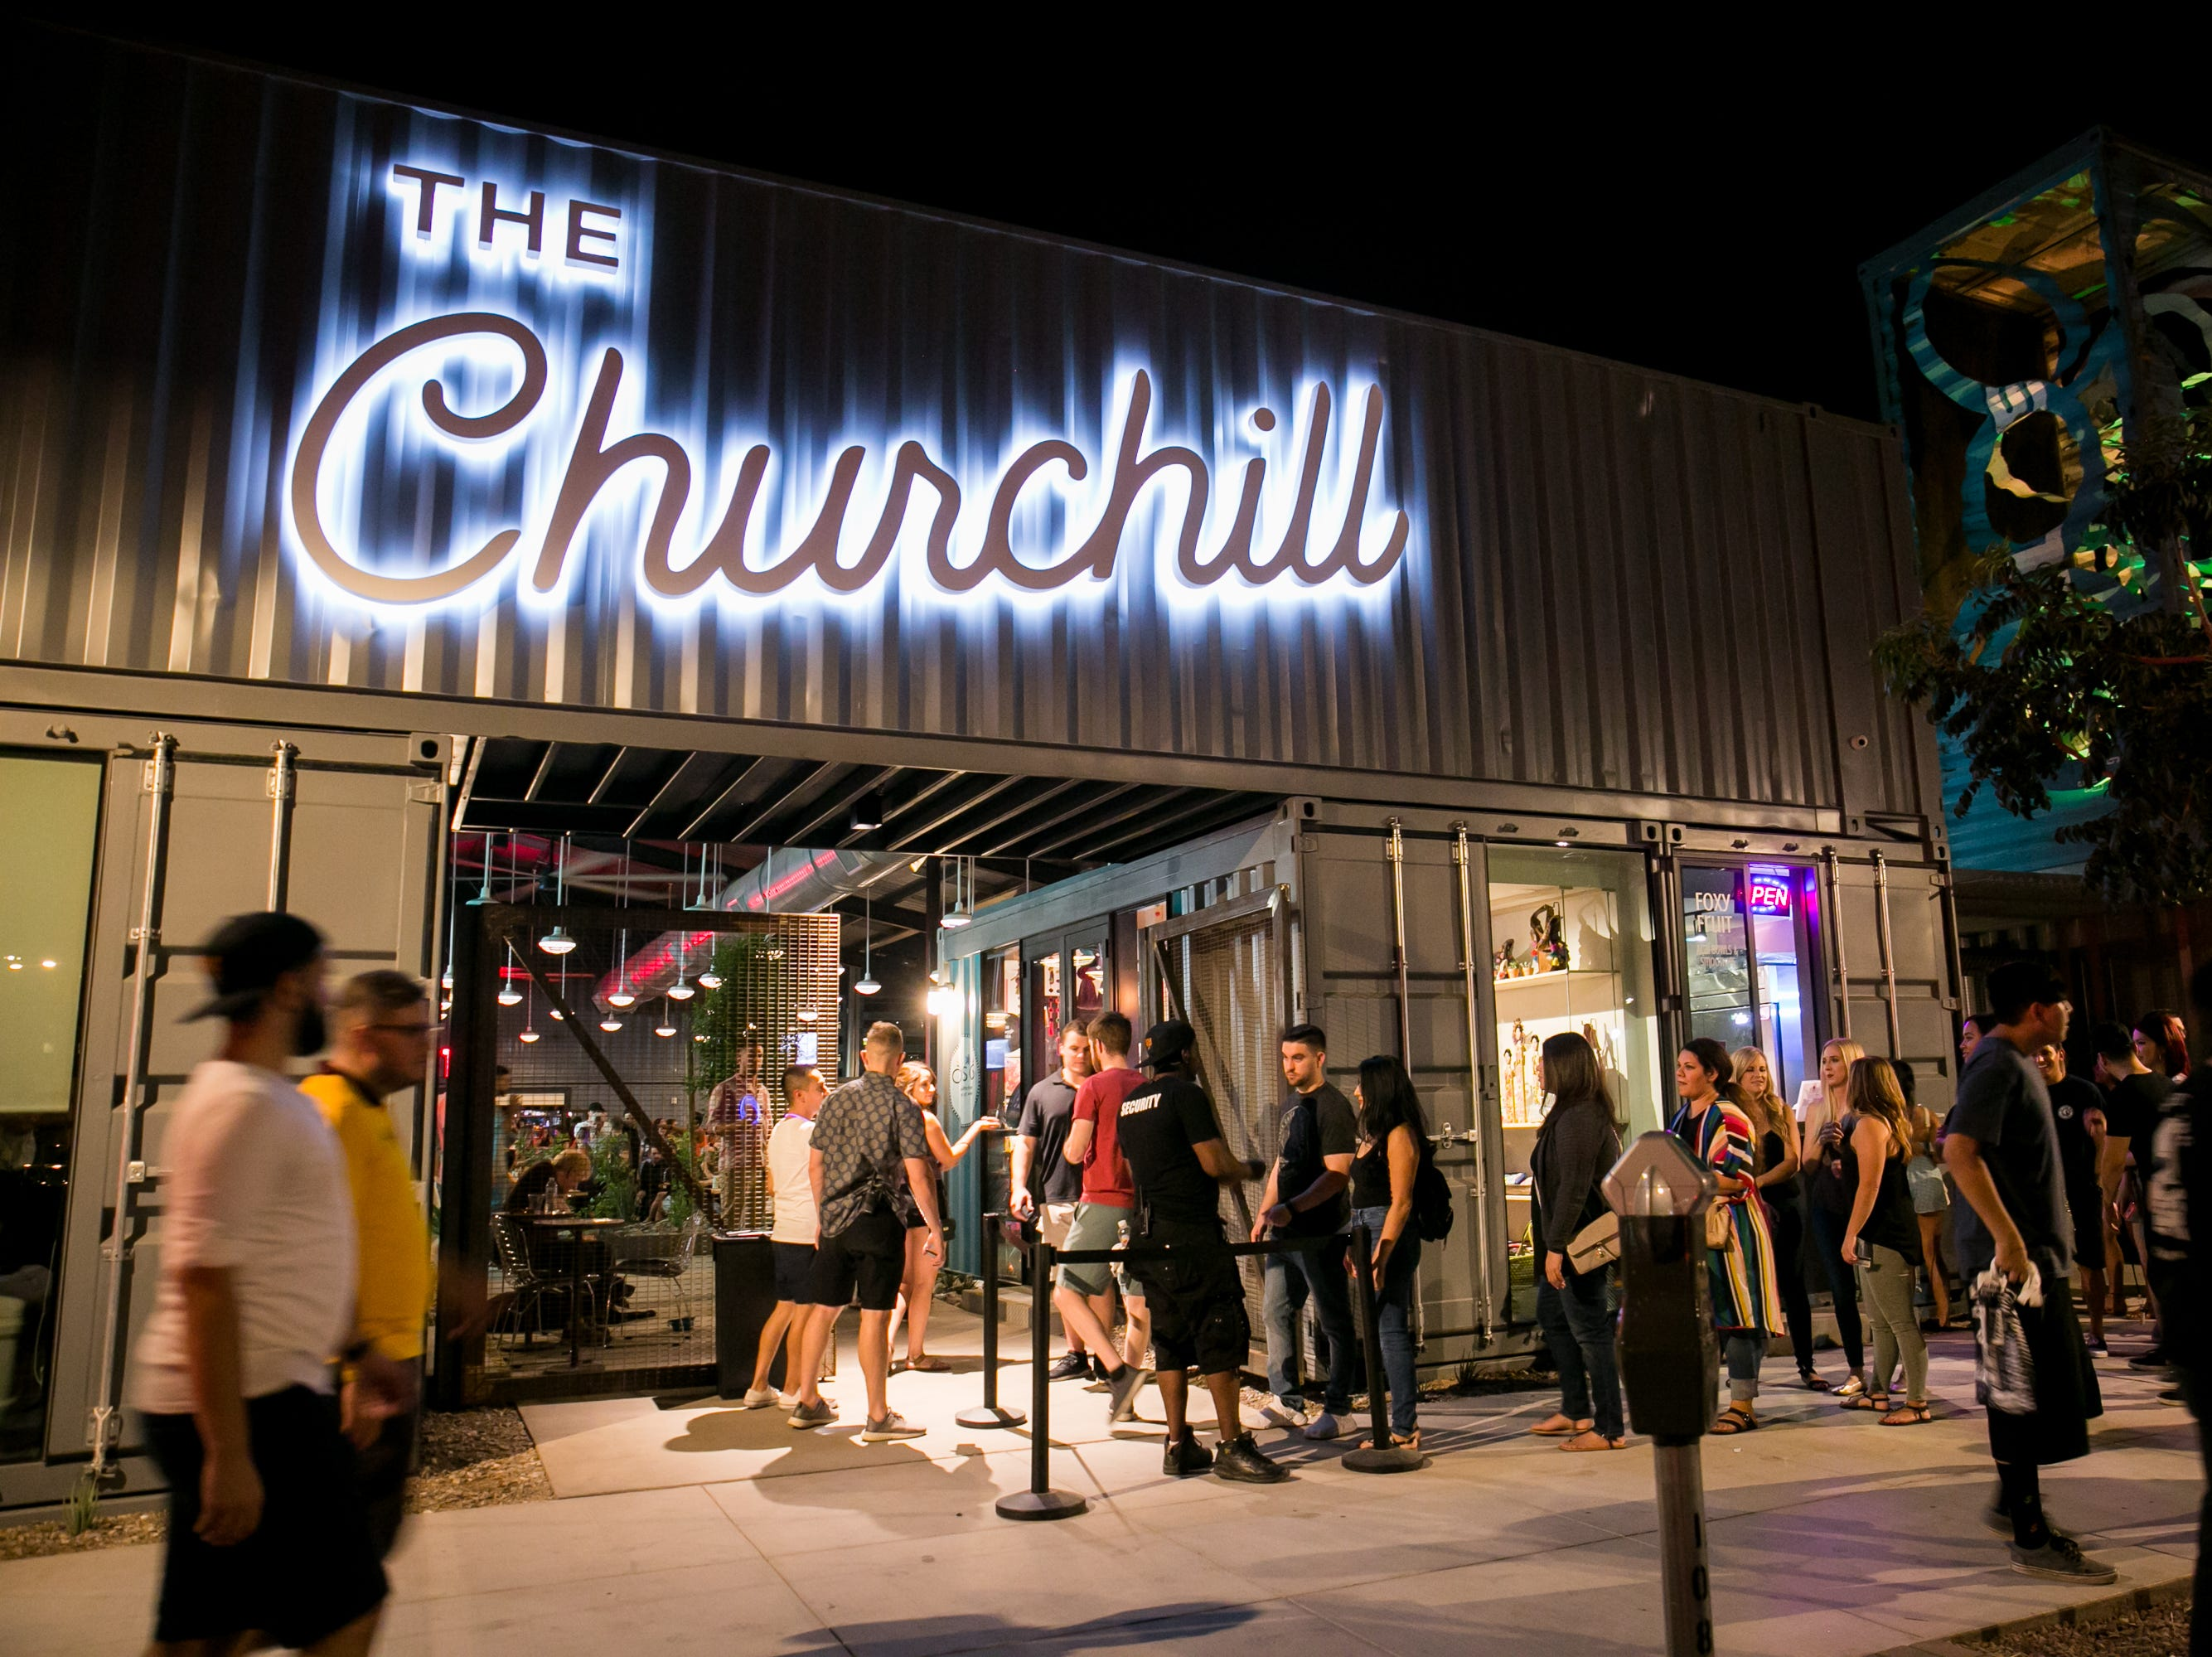 The Churchill was popular during the First Friday artwalk on Friday, September 7, 2018.